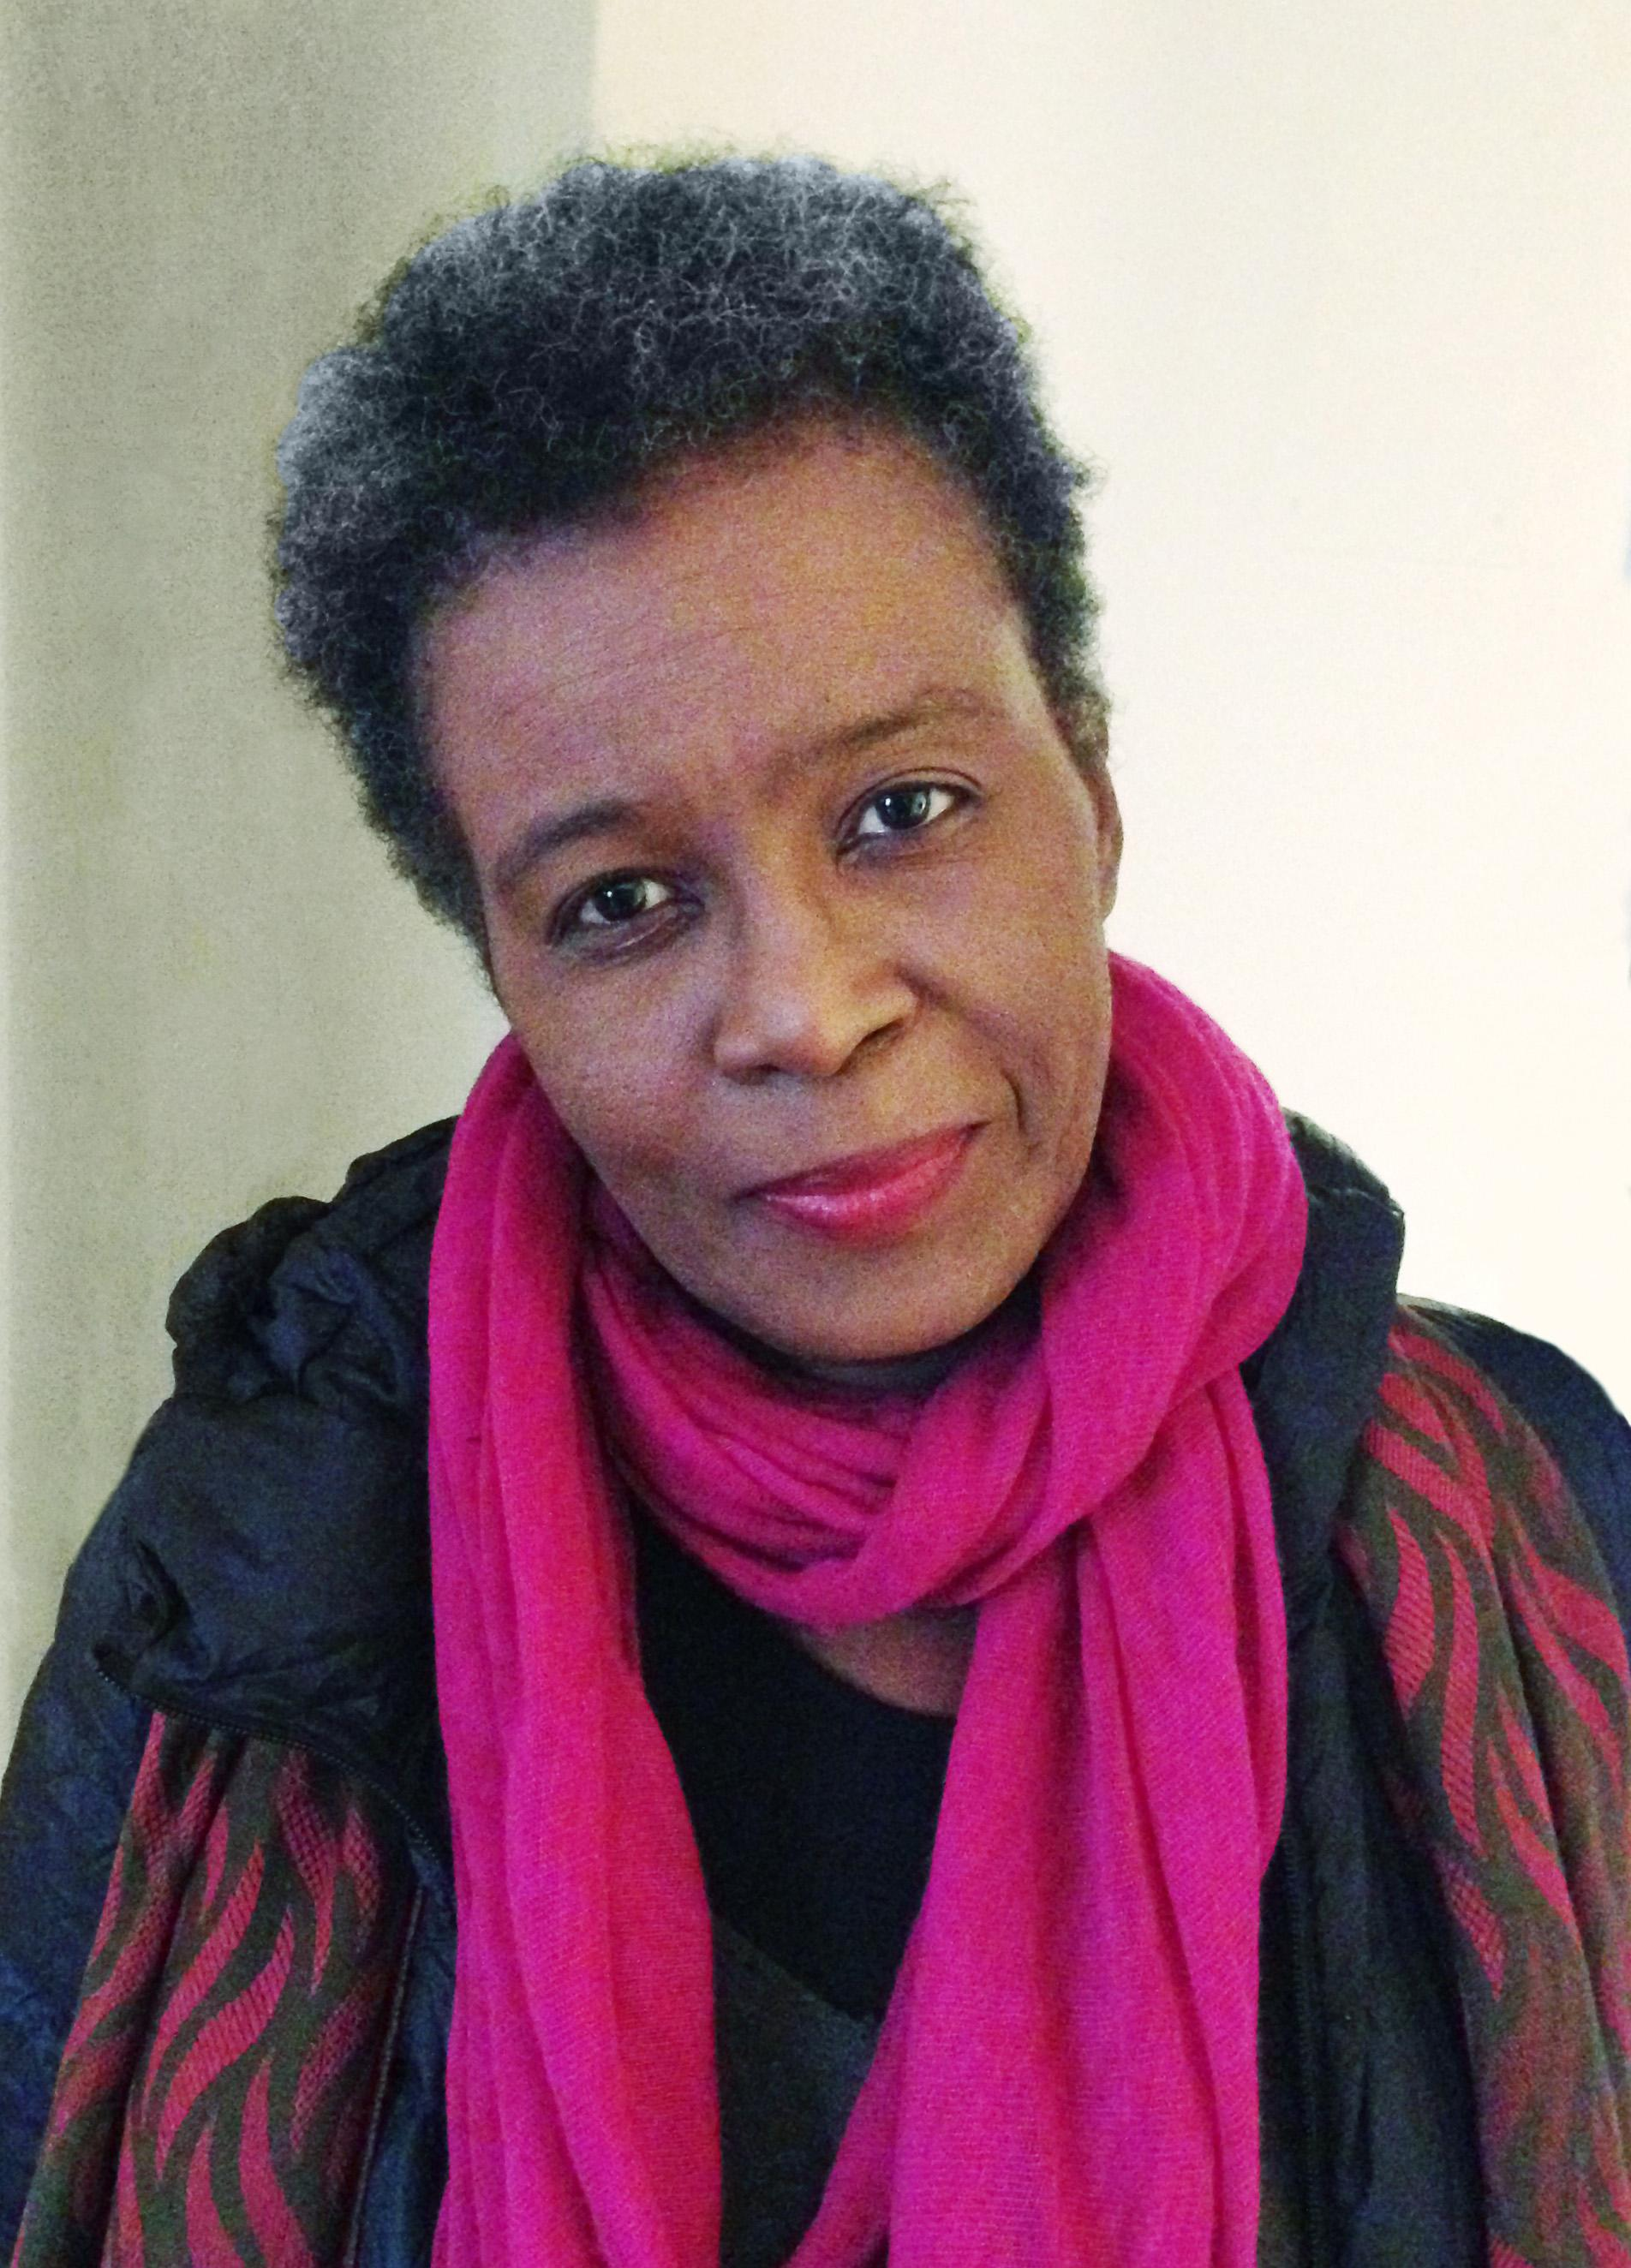 A photographic portrait shows a middle-aged, dark-skinned woman cocking her head and wearing a bright pink scarf.